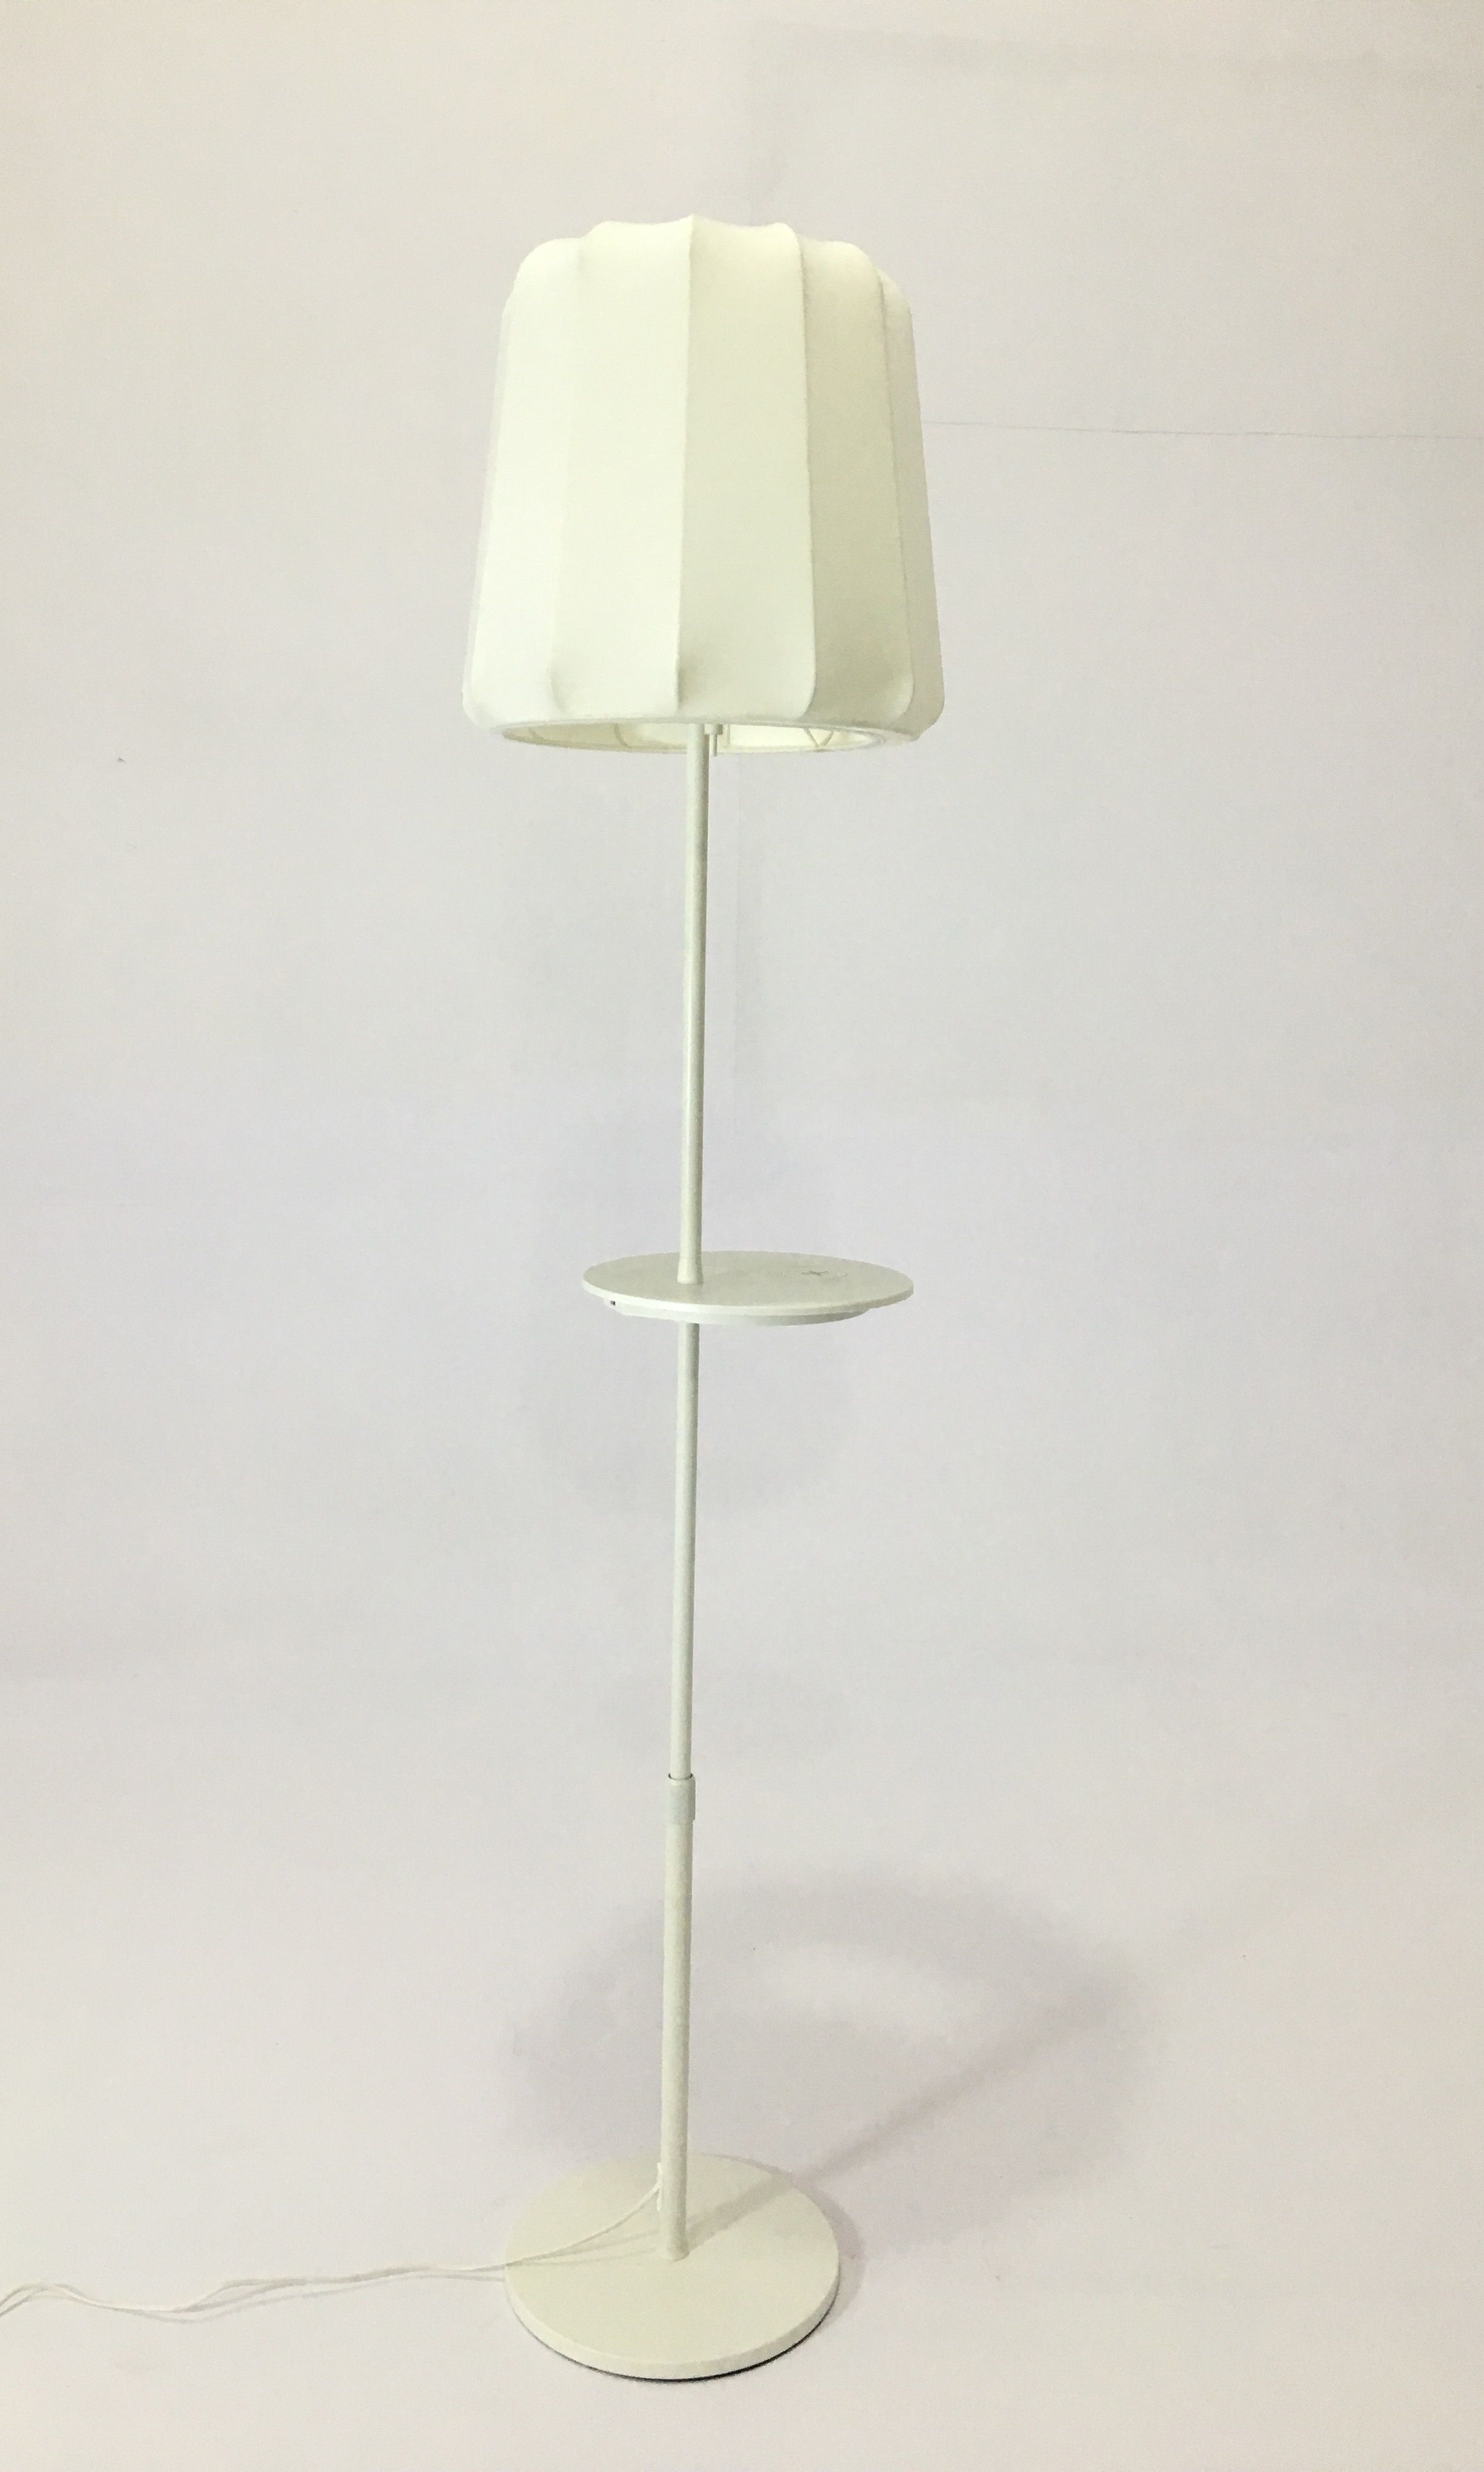 lamp led reading cool white lamps most floor genius lowes standing